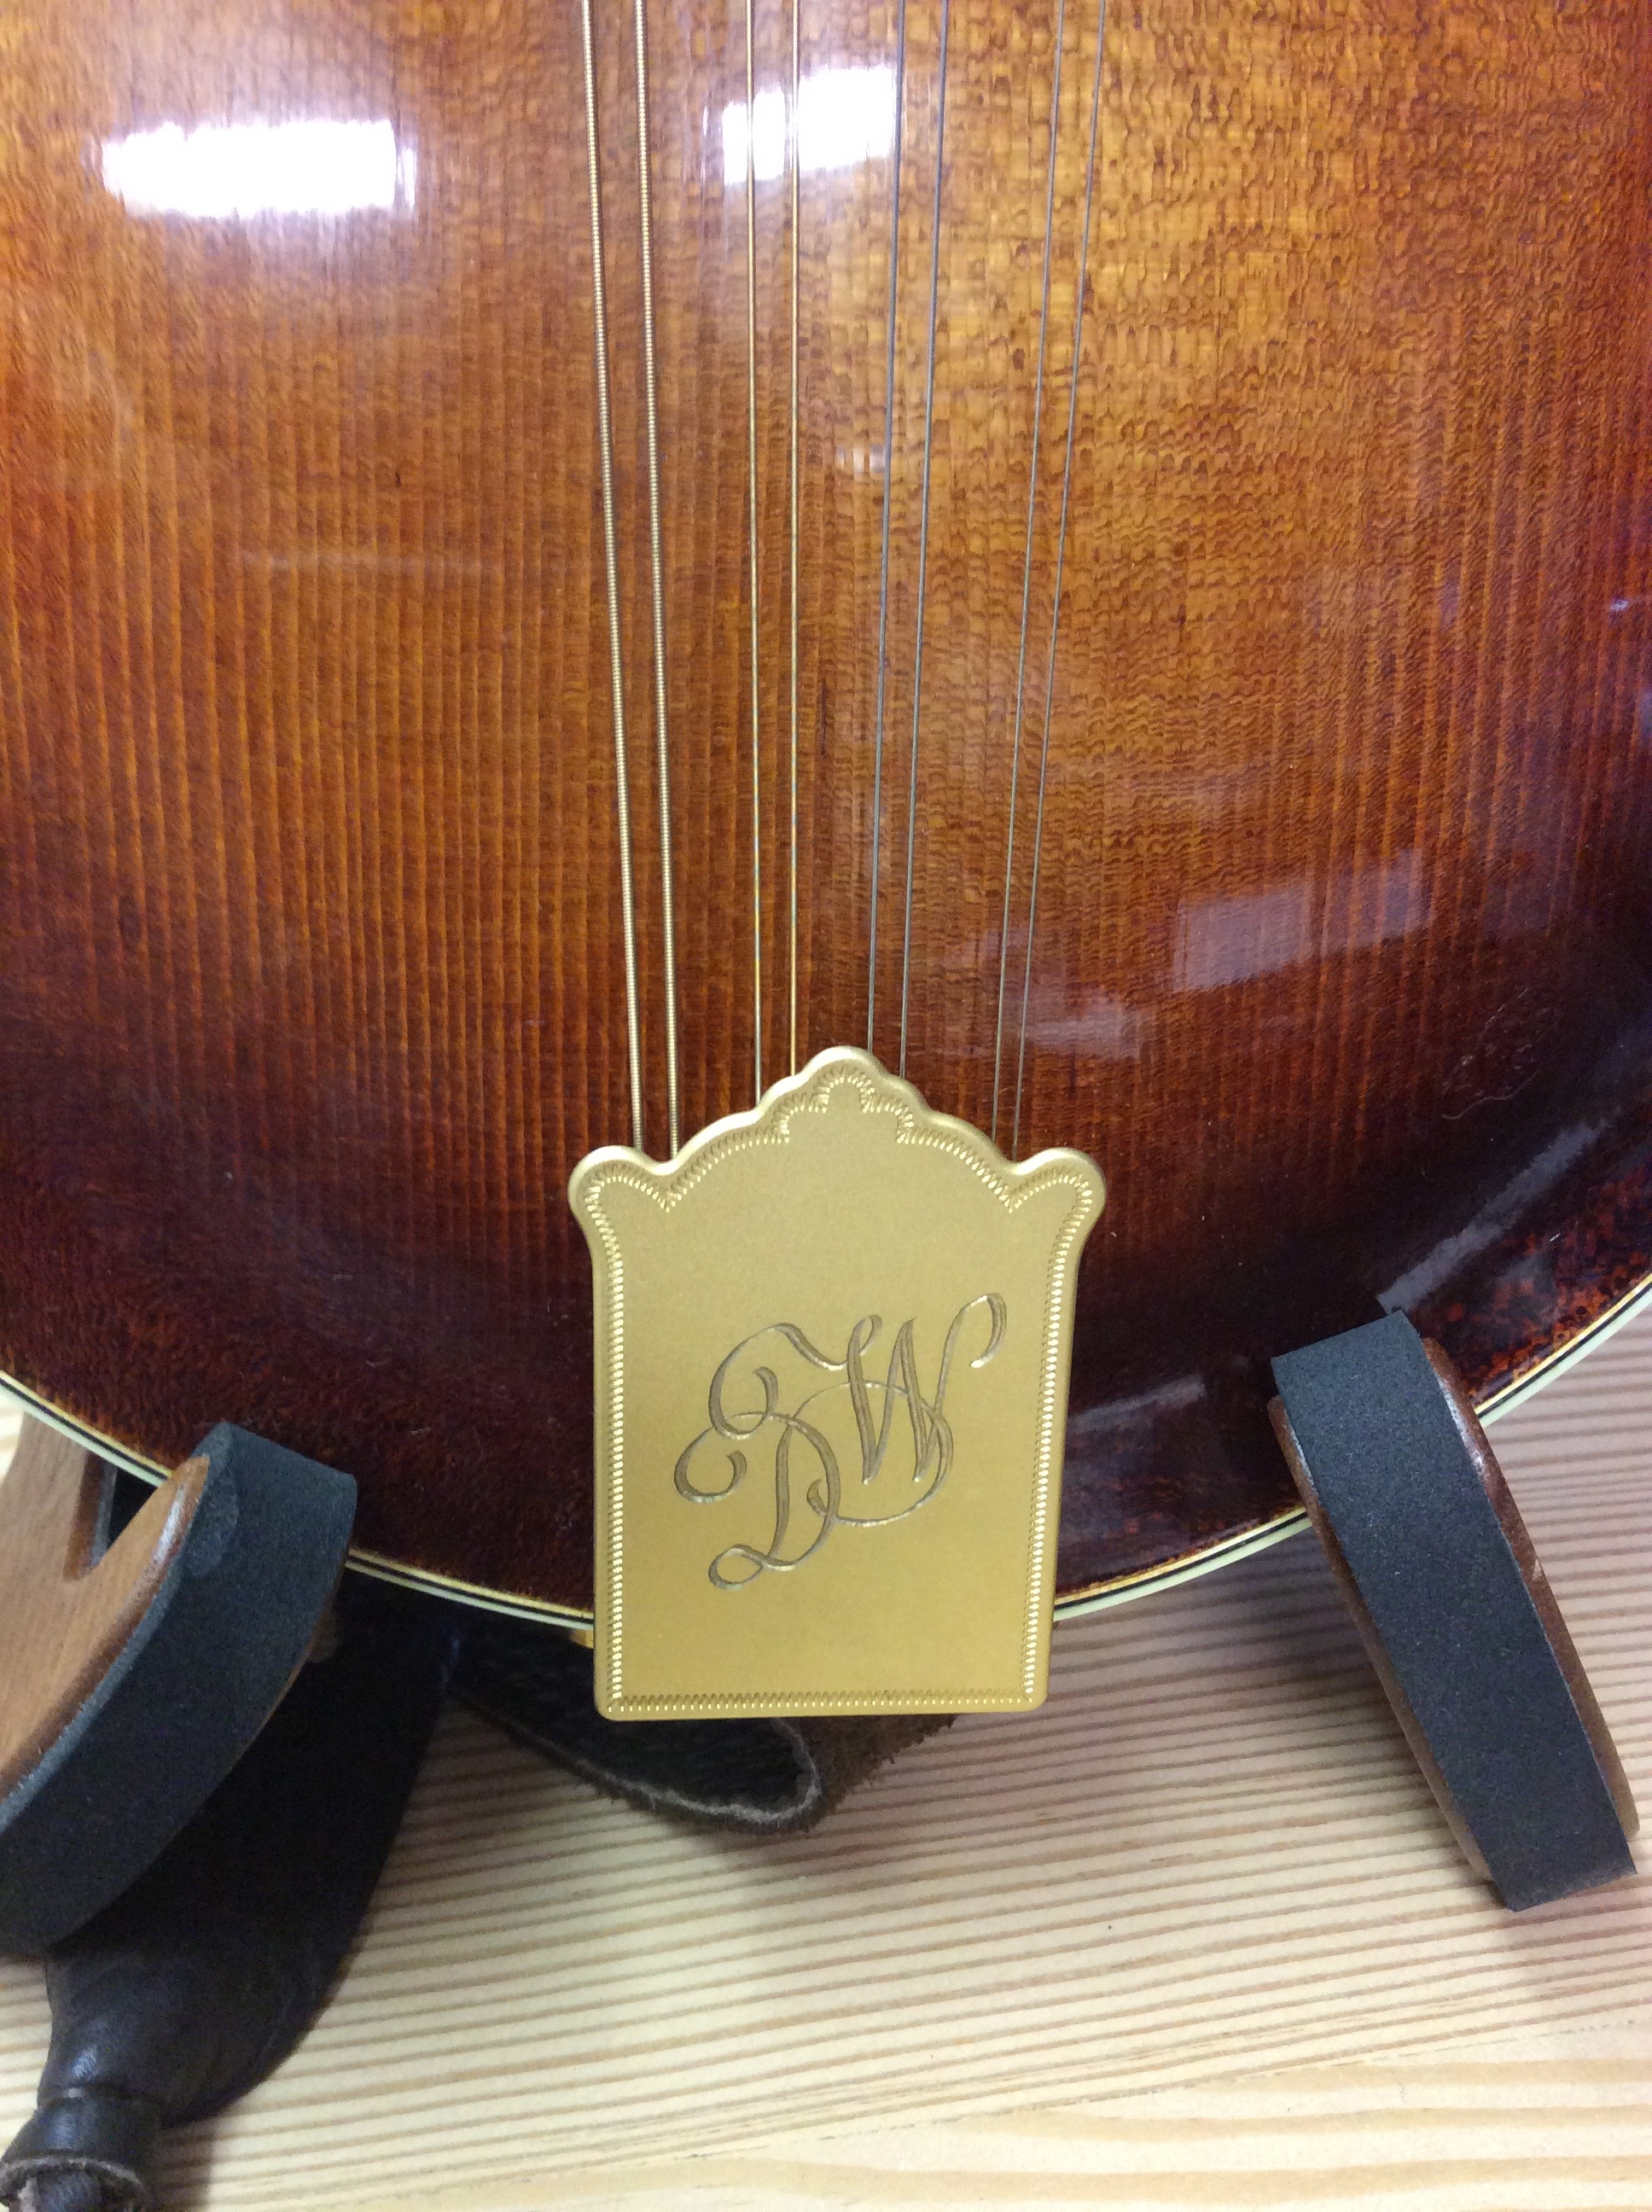 Custom tailpiece engraving